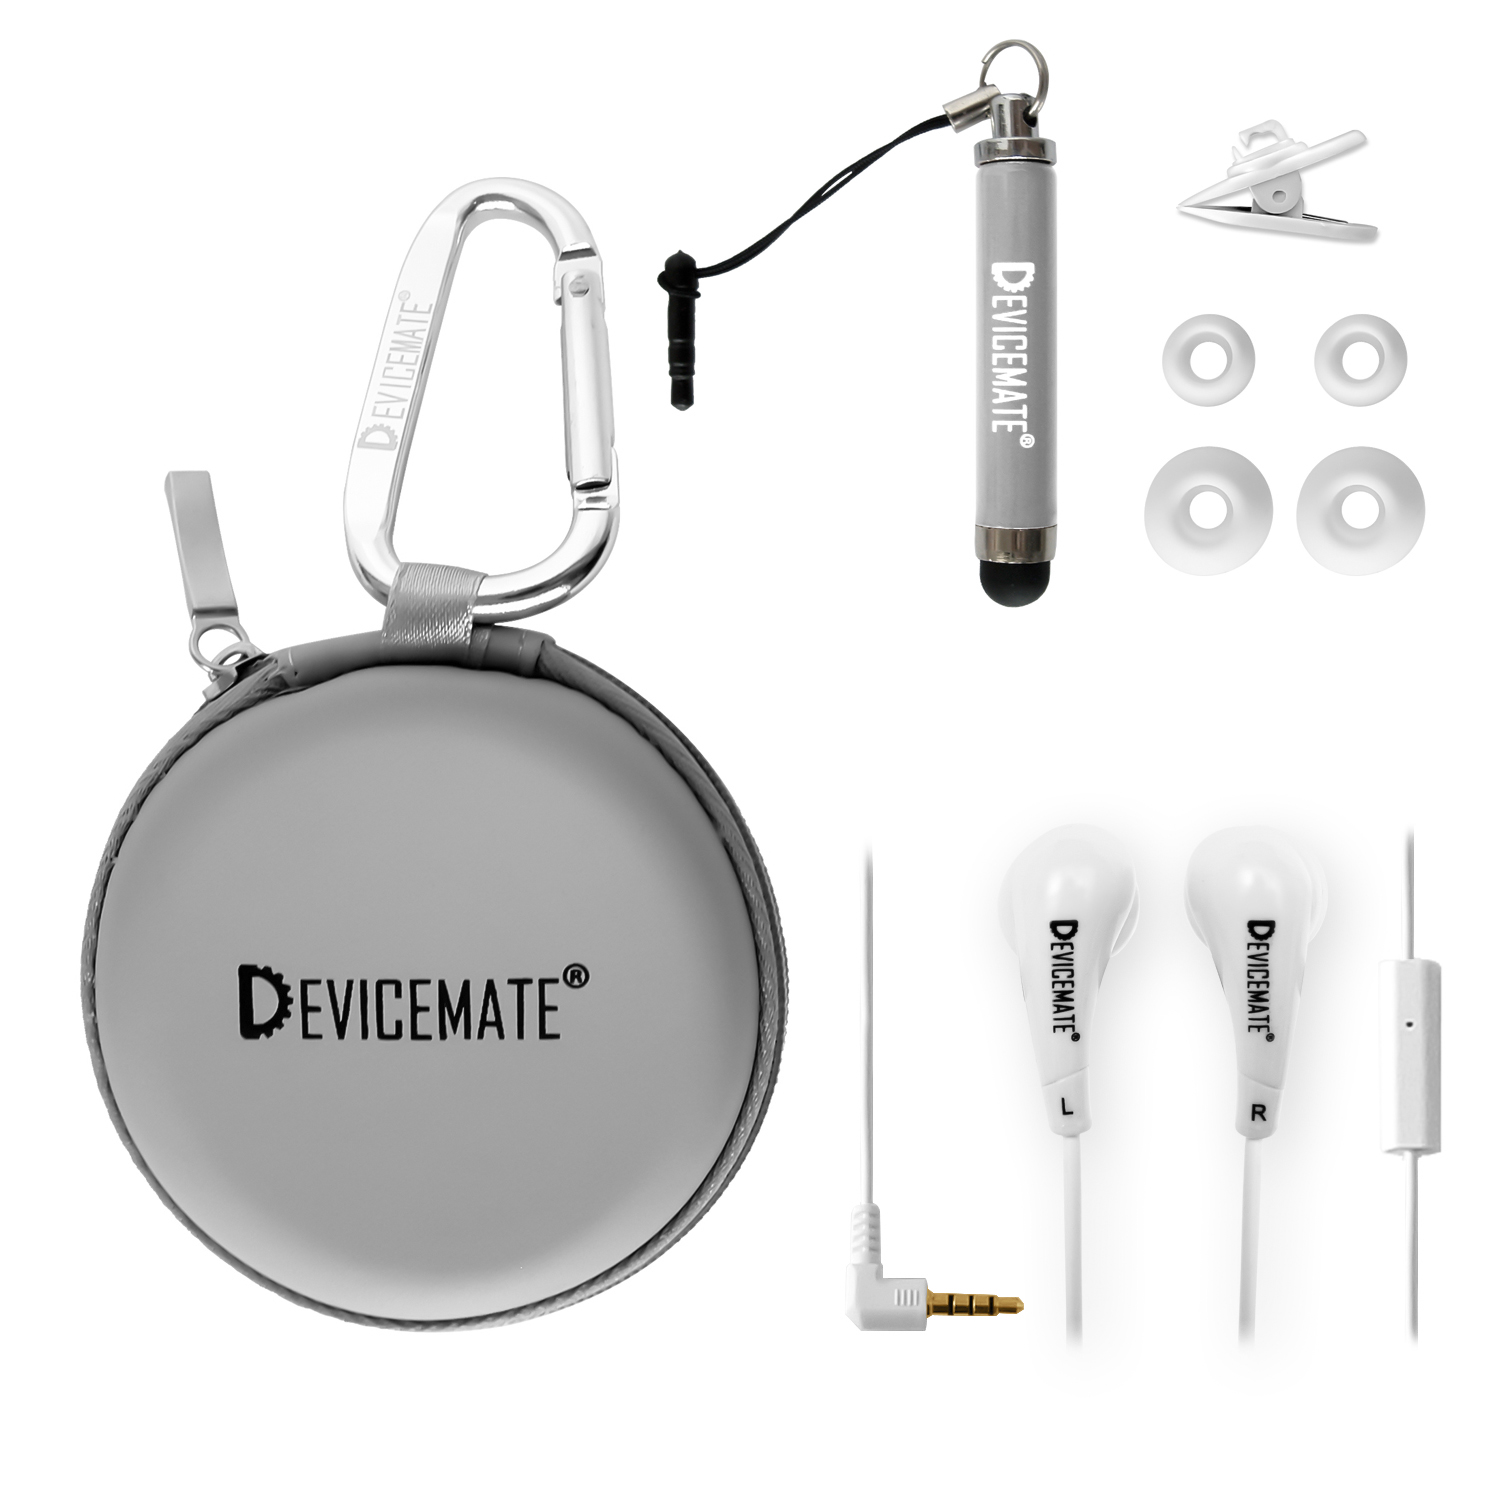 Devicemate SD 455-SLG Earphones w/mic for iPhone [Slt Gray] Case